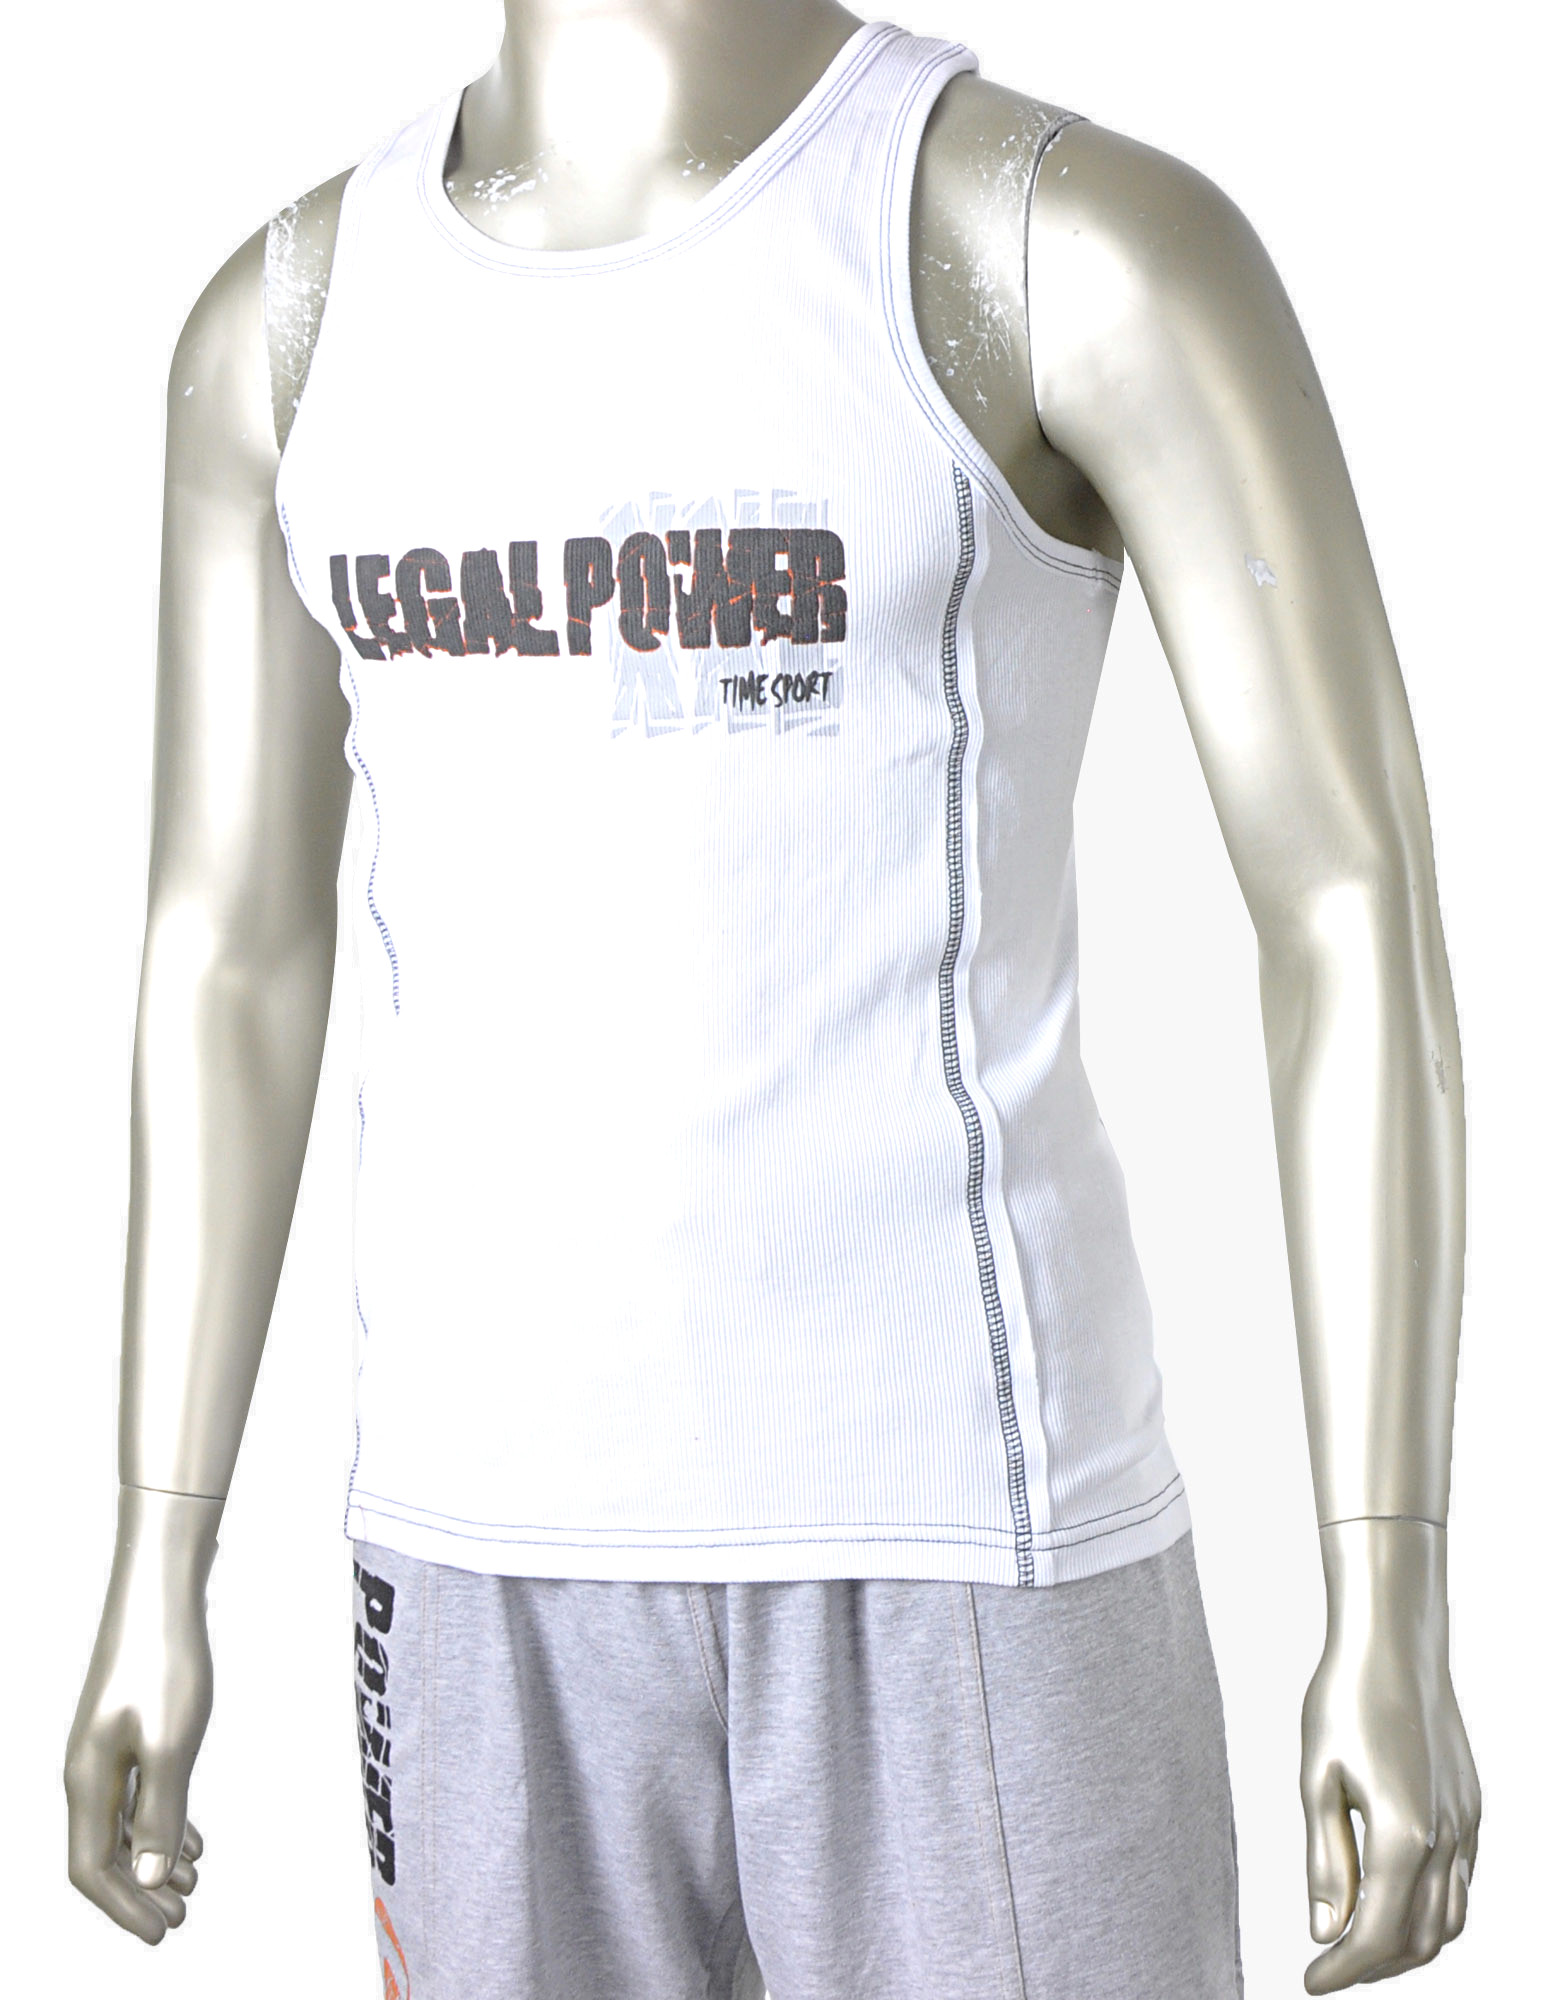 Xxl Lastminute Tank Top Xxl Legal Power Di Legal Power Colore Bianco